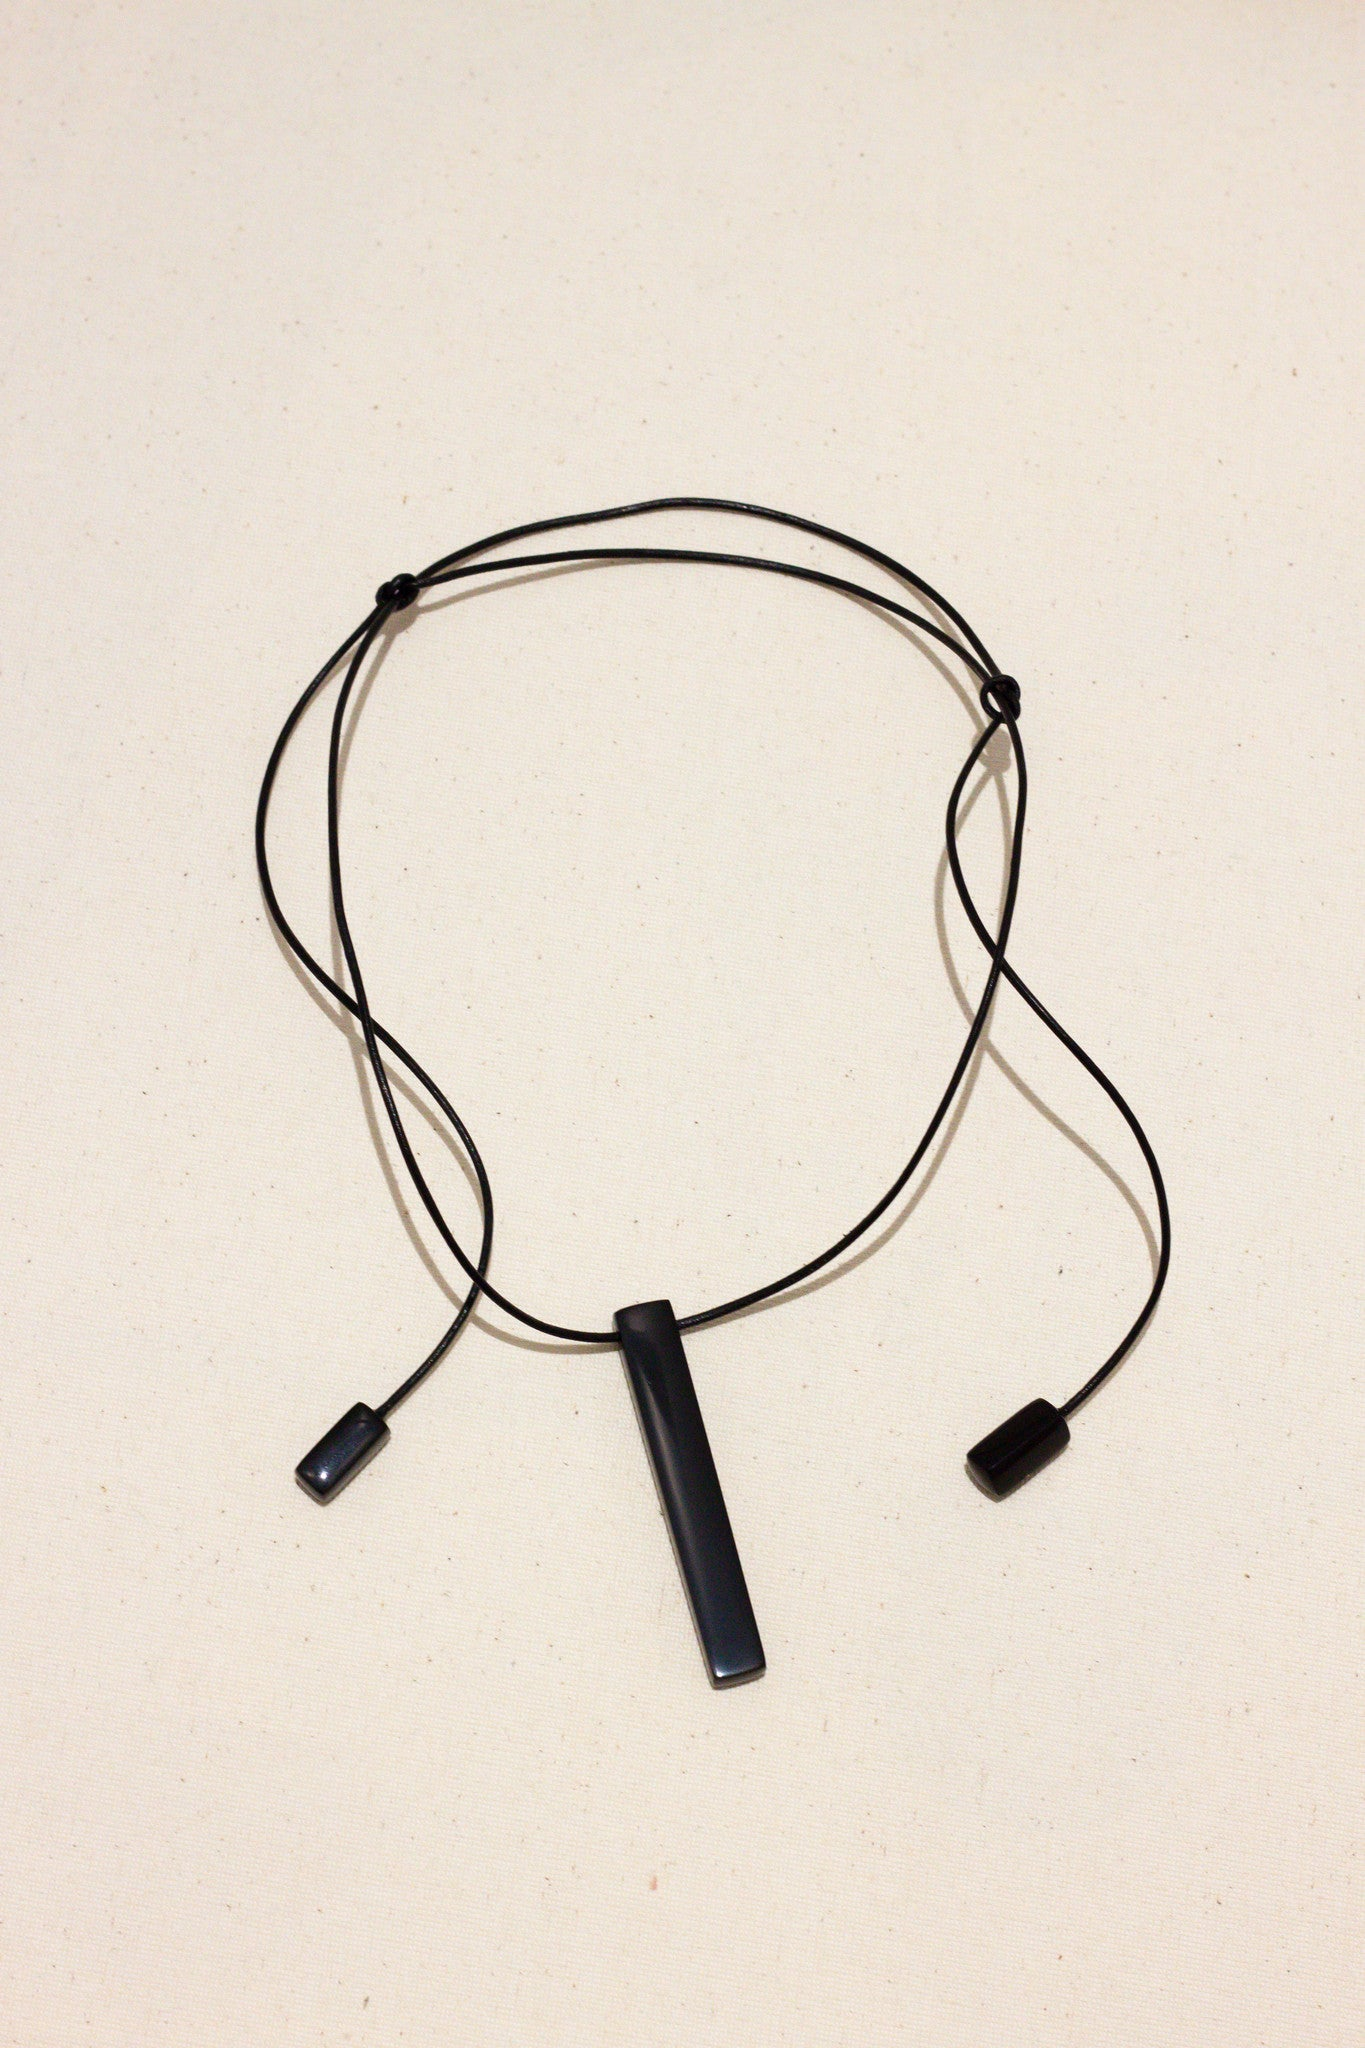 Onyx bar tie necklace